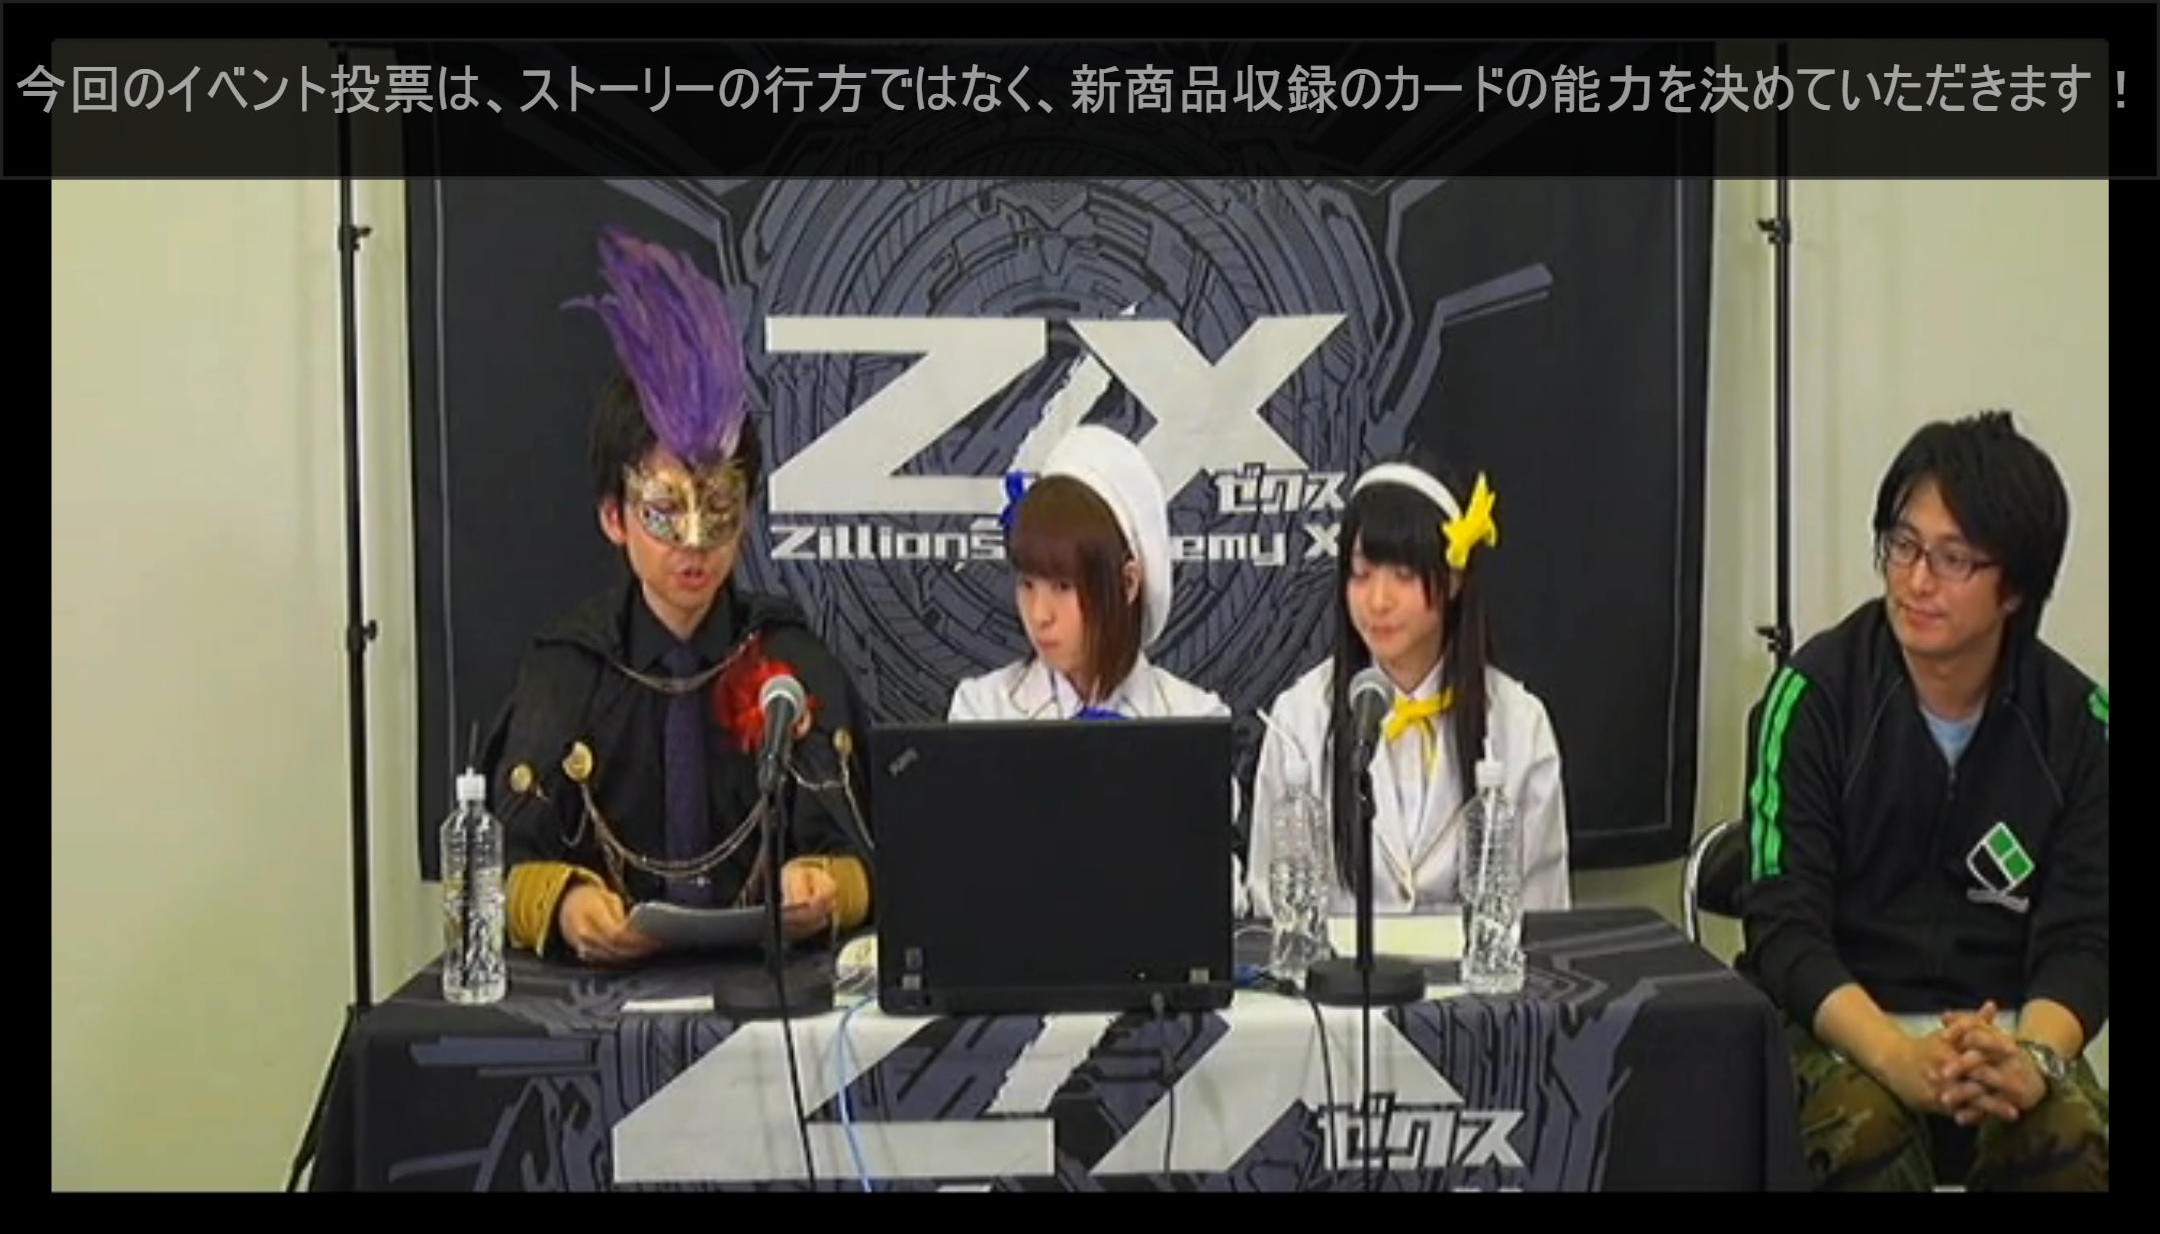 zx-ignition-broadcast-1700510-100.jpg